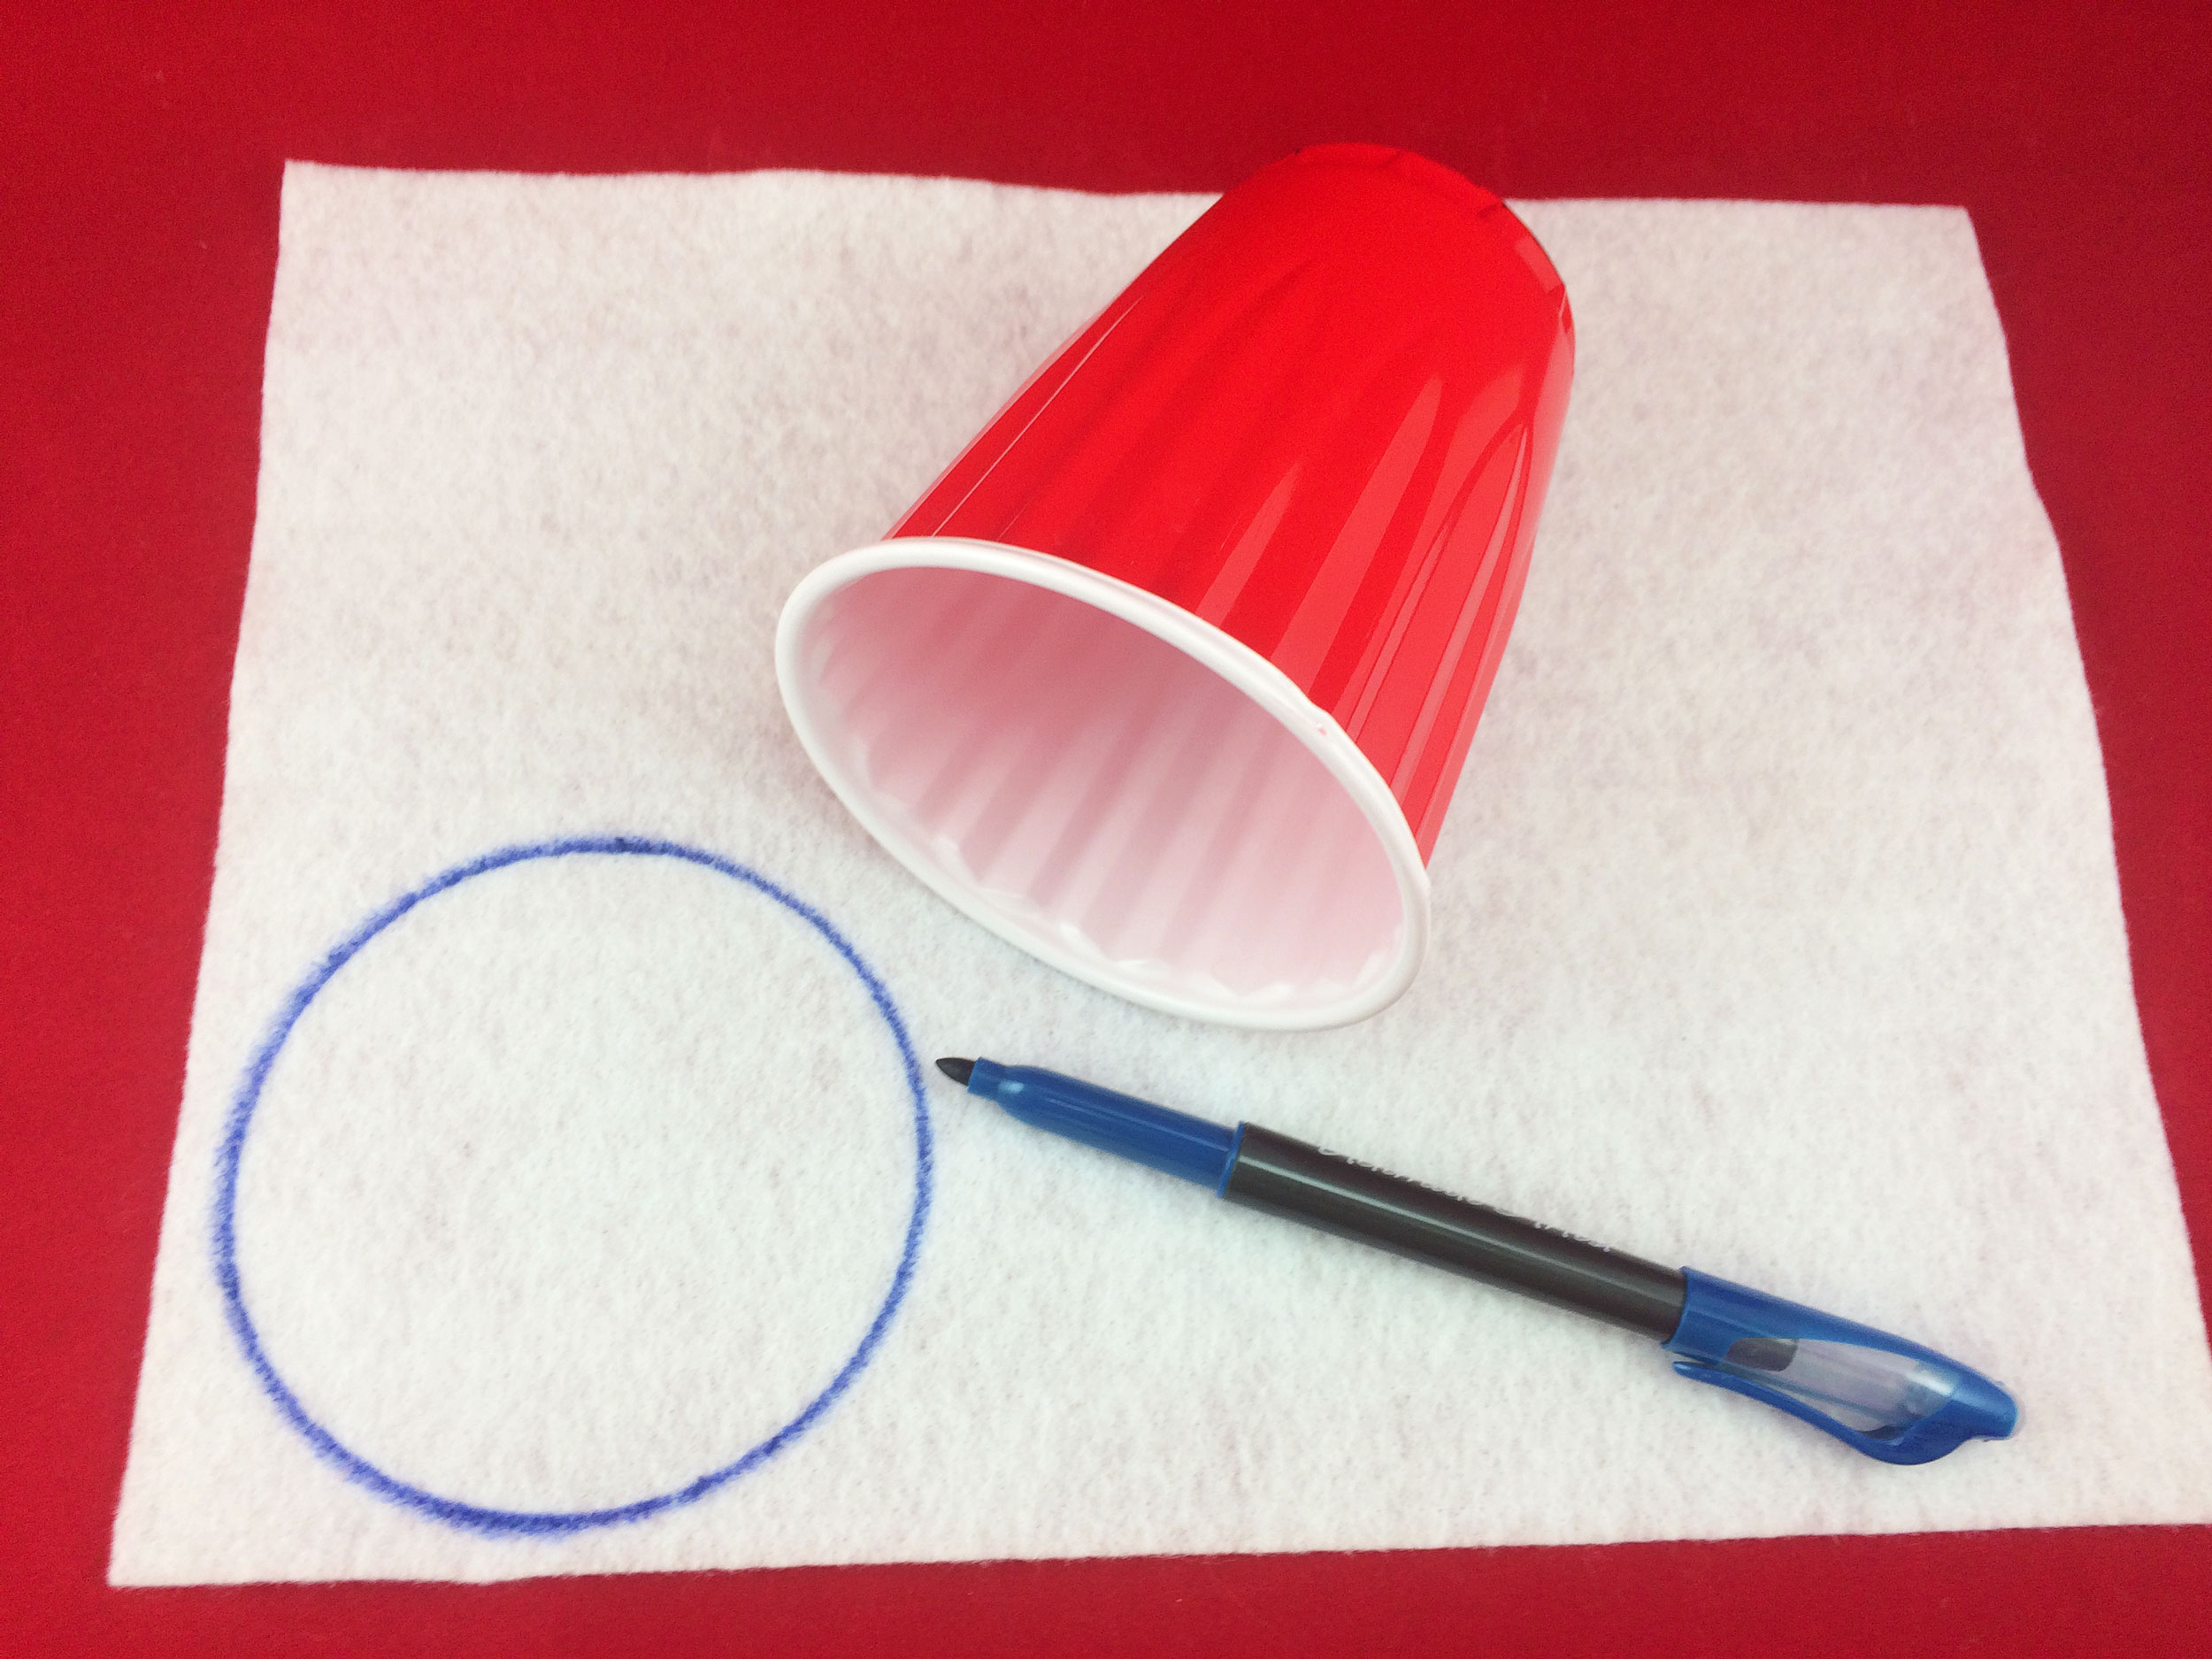 Traced circle on felt by blue marker. | OrnamentShop.com